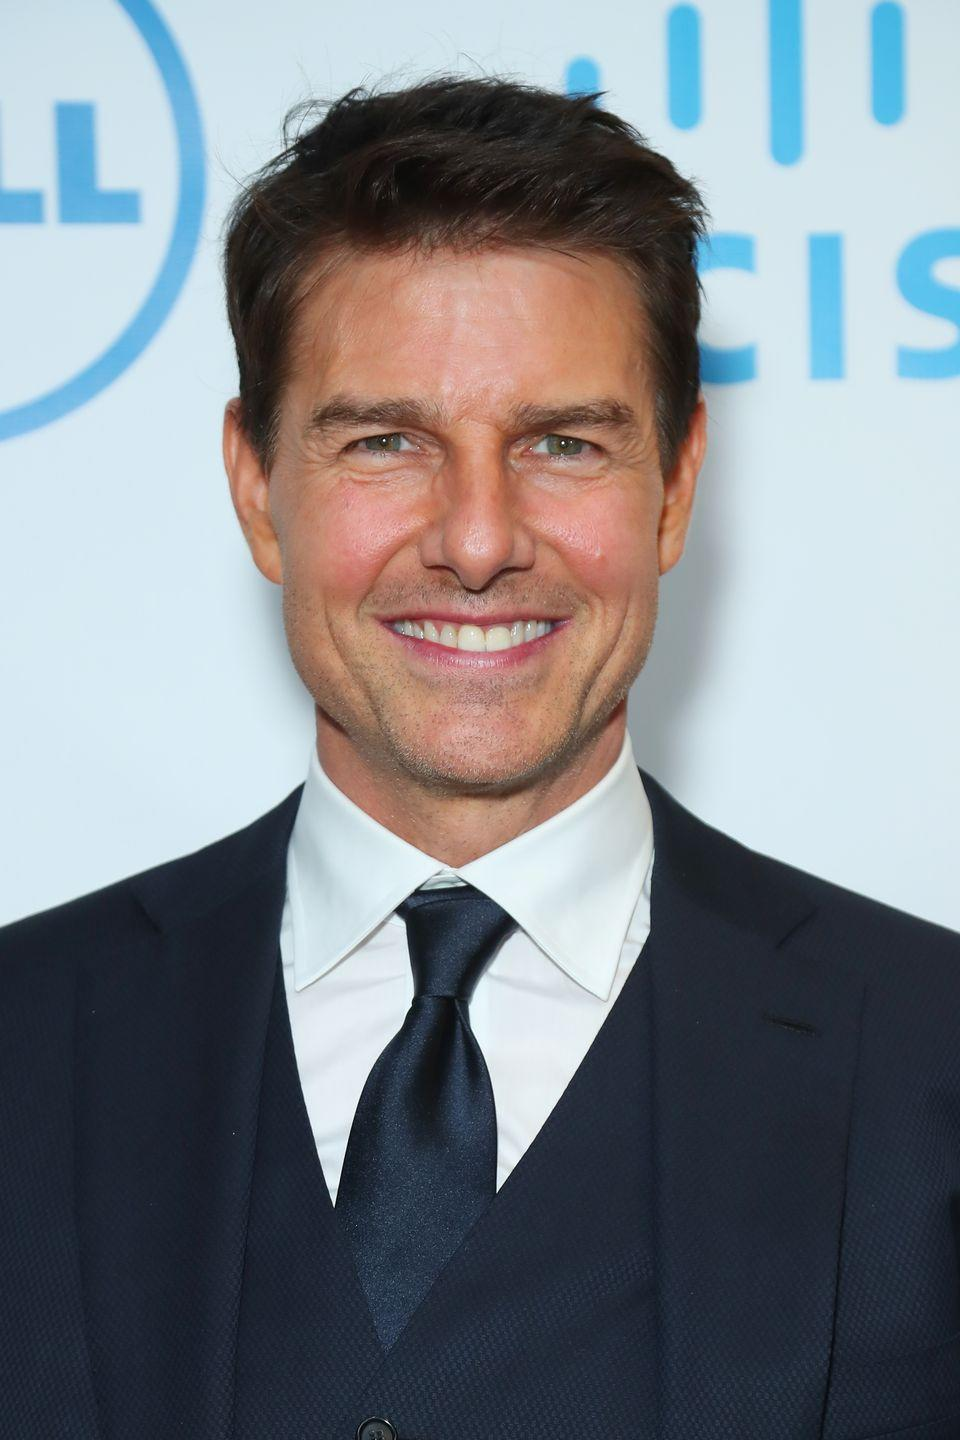 """<p>If you need him, <a href=""""https://www.cosmopolitan.com/entertainment/celebs/a34987258/tom-cruise-screams-mission-impossible-7-covid-19/"""" rel=""""nofollow noopener"""" target=""""_blank"""" data-ylk=""""slk:you can find him yelling at people on set of the latest Mission Impossible movie."""" class=""""link rapid-noclick-resp"""">you can find him yelling at people on set of the latest <em>Mission Impossible</em> movie.</a></p>"""